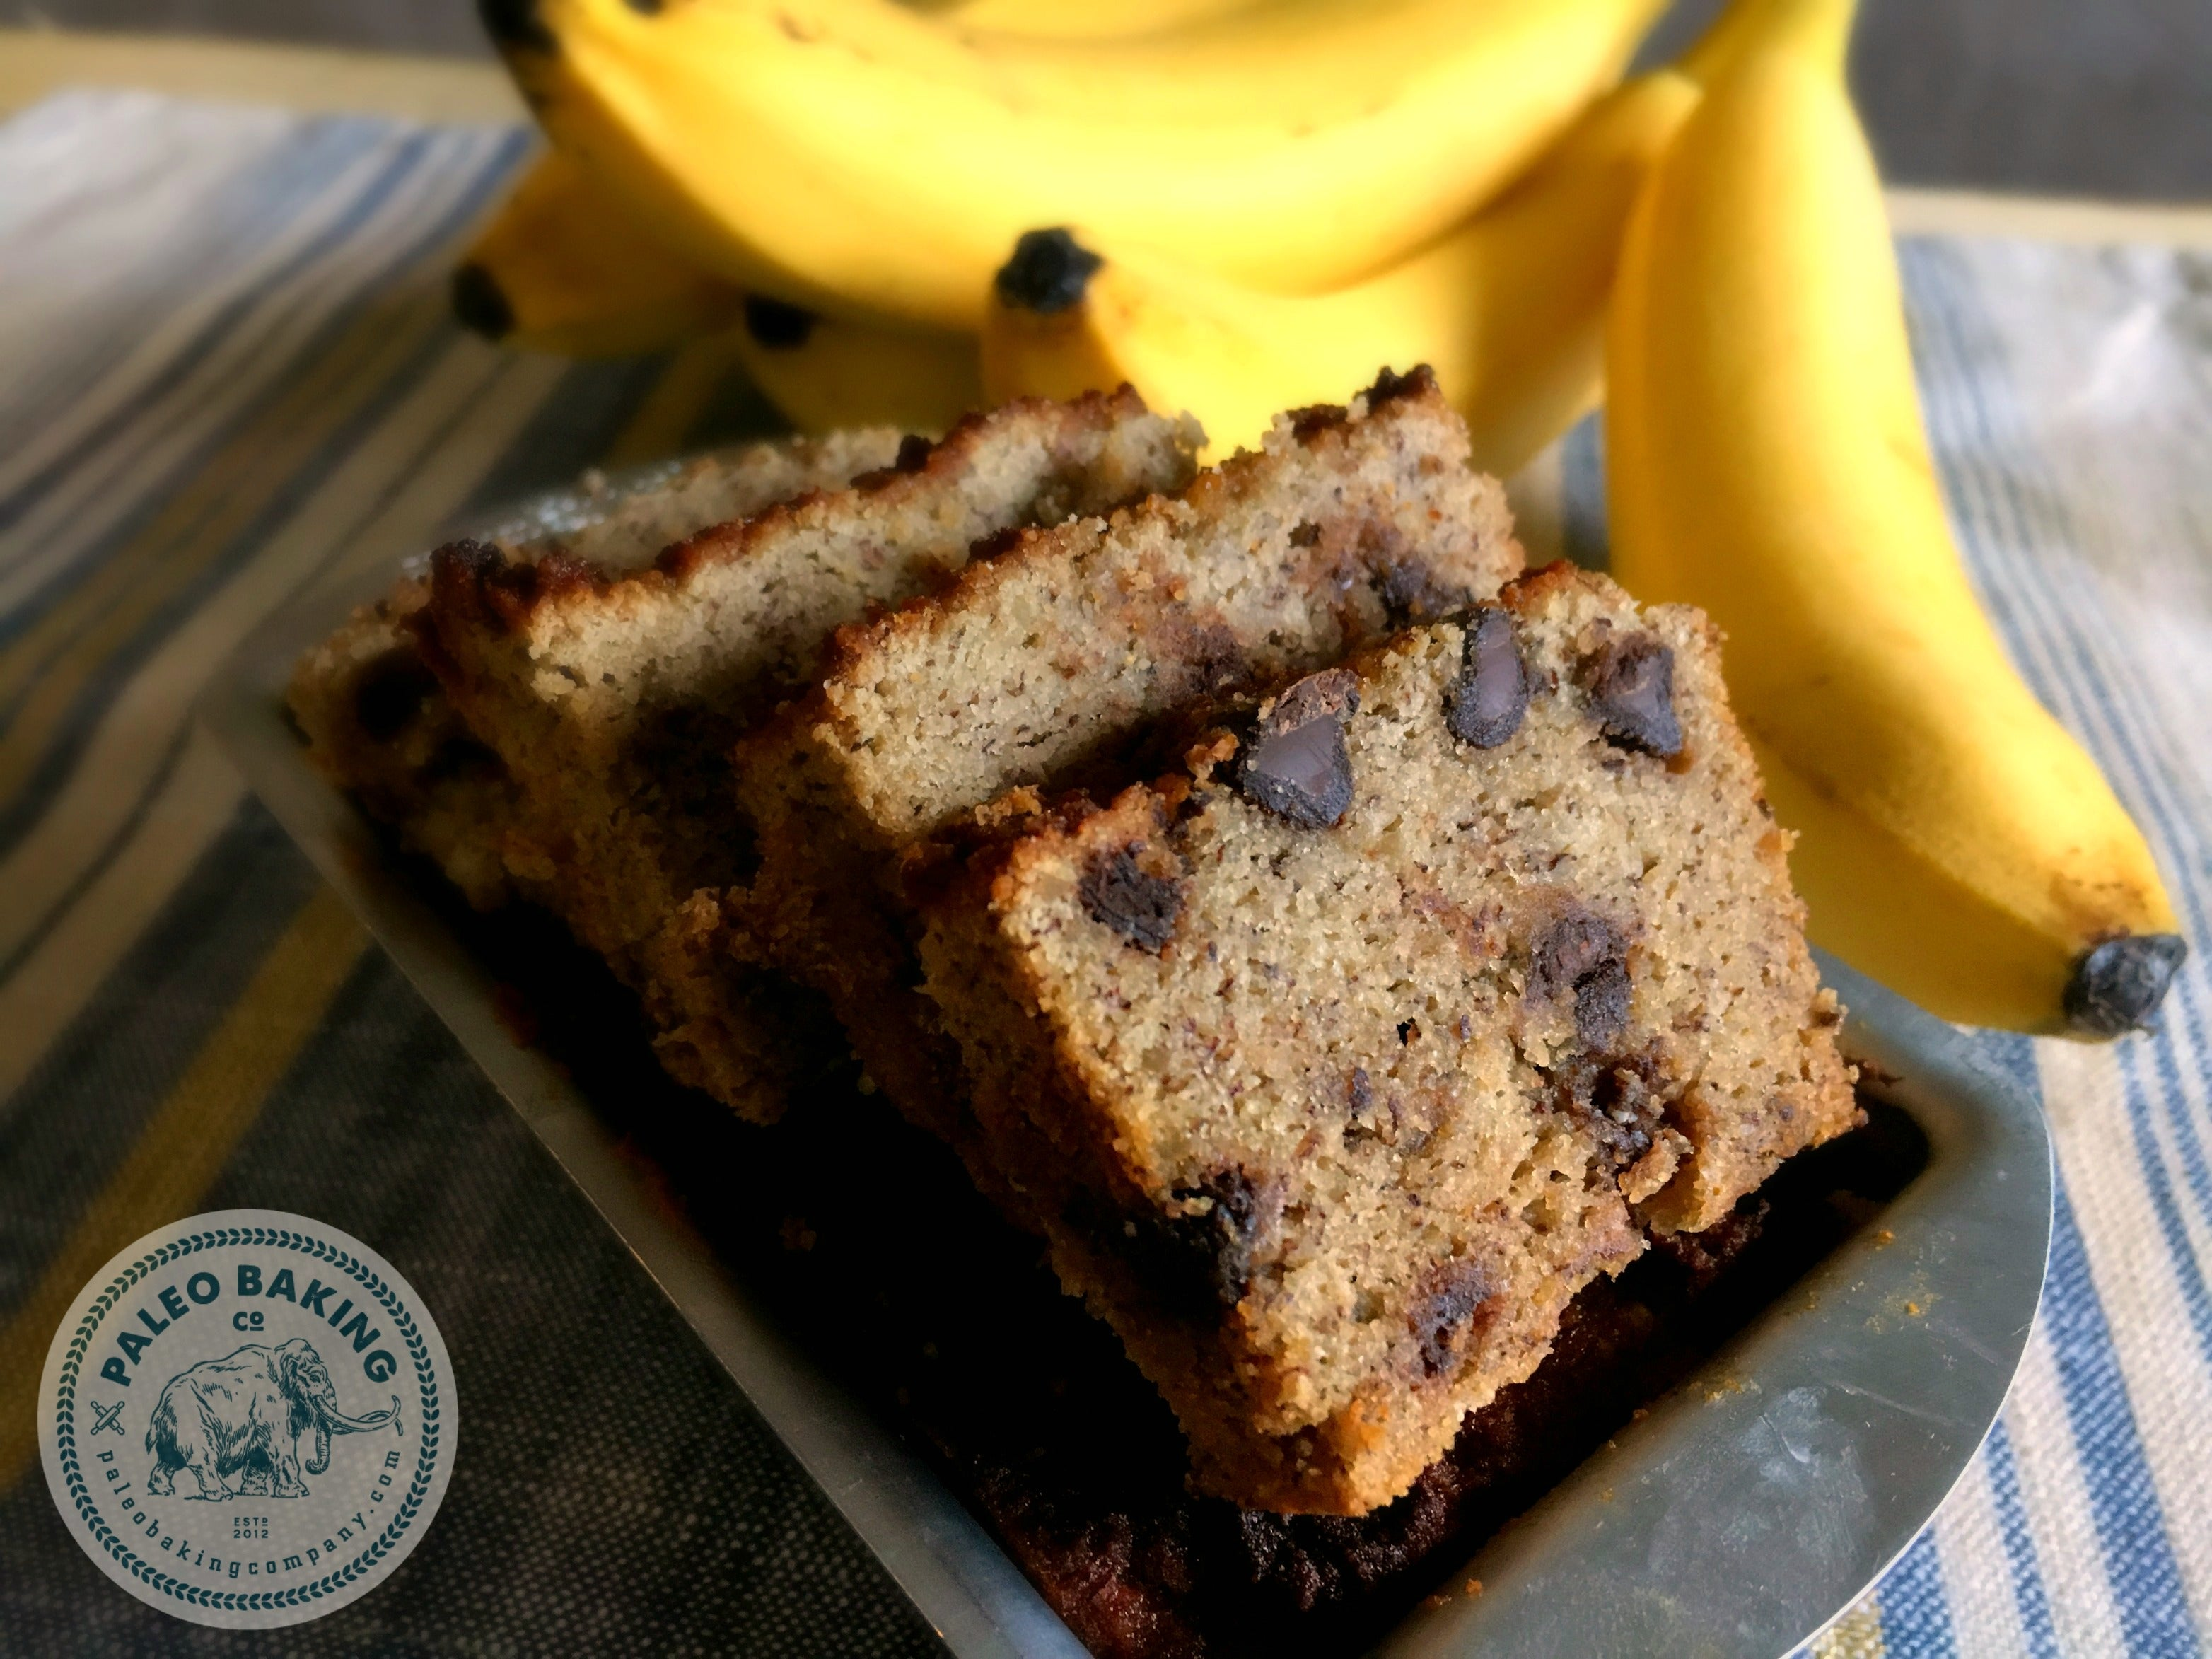 Recipe for Paleo Chocolate Chip Banana Bread